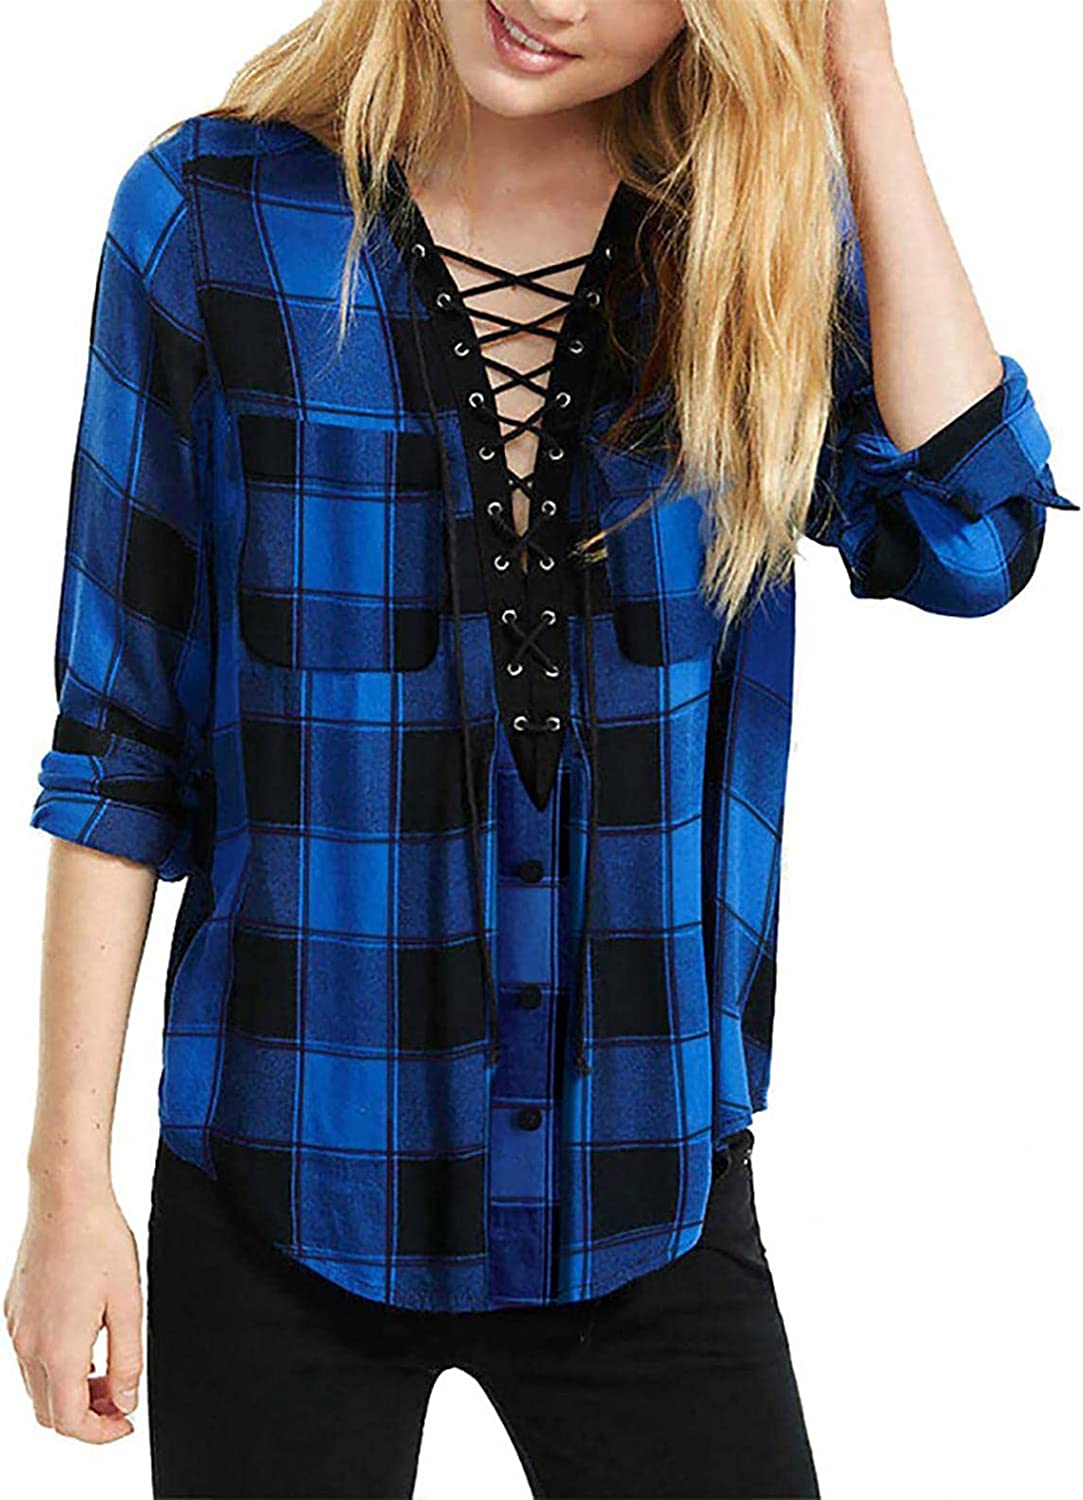 Women Casual V Neck Comfy Blouse Ladies Plaid Long Sleeve Shirt Loose Button Down Tops with Pockets